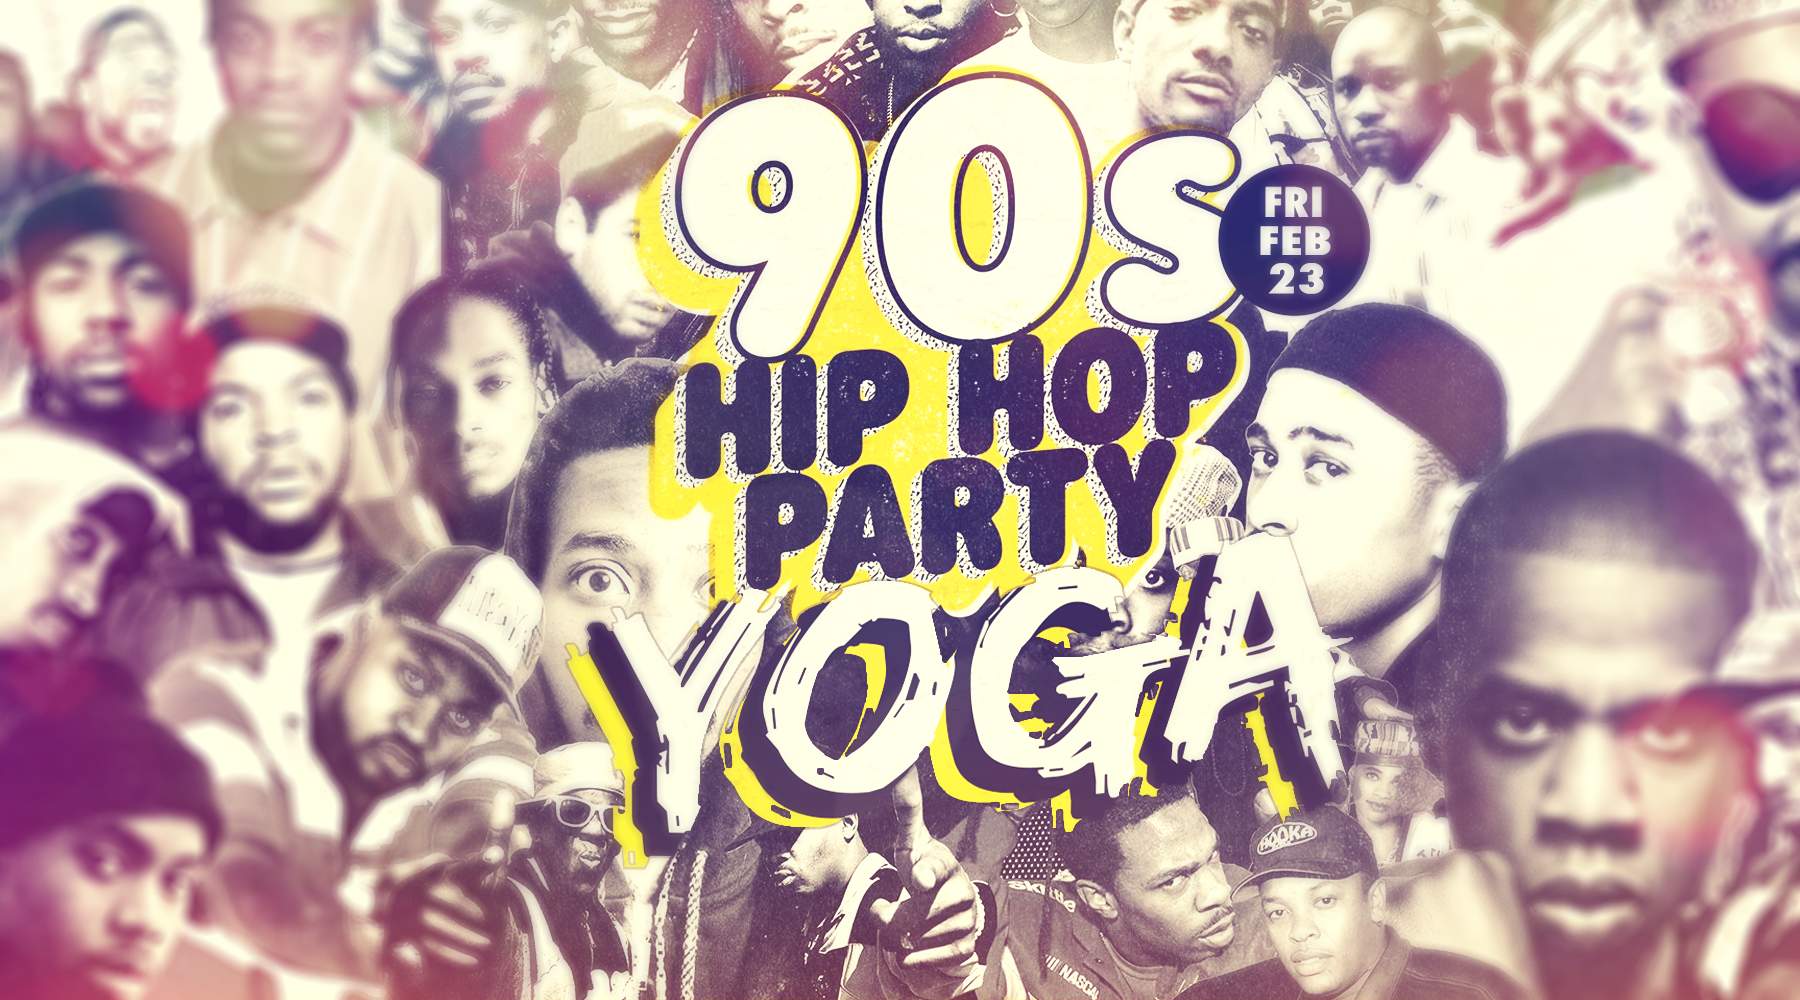 Beer & Yoga - 90s Hip Hop Party Edition